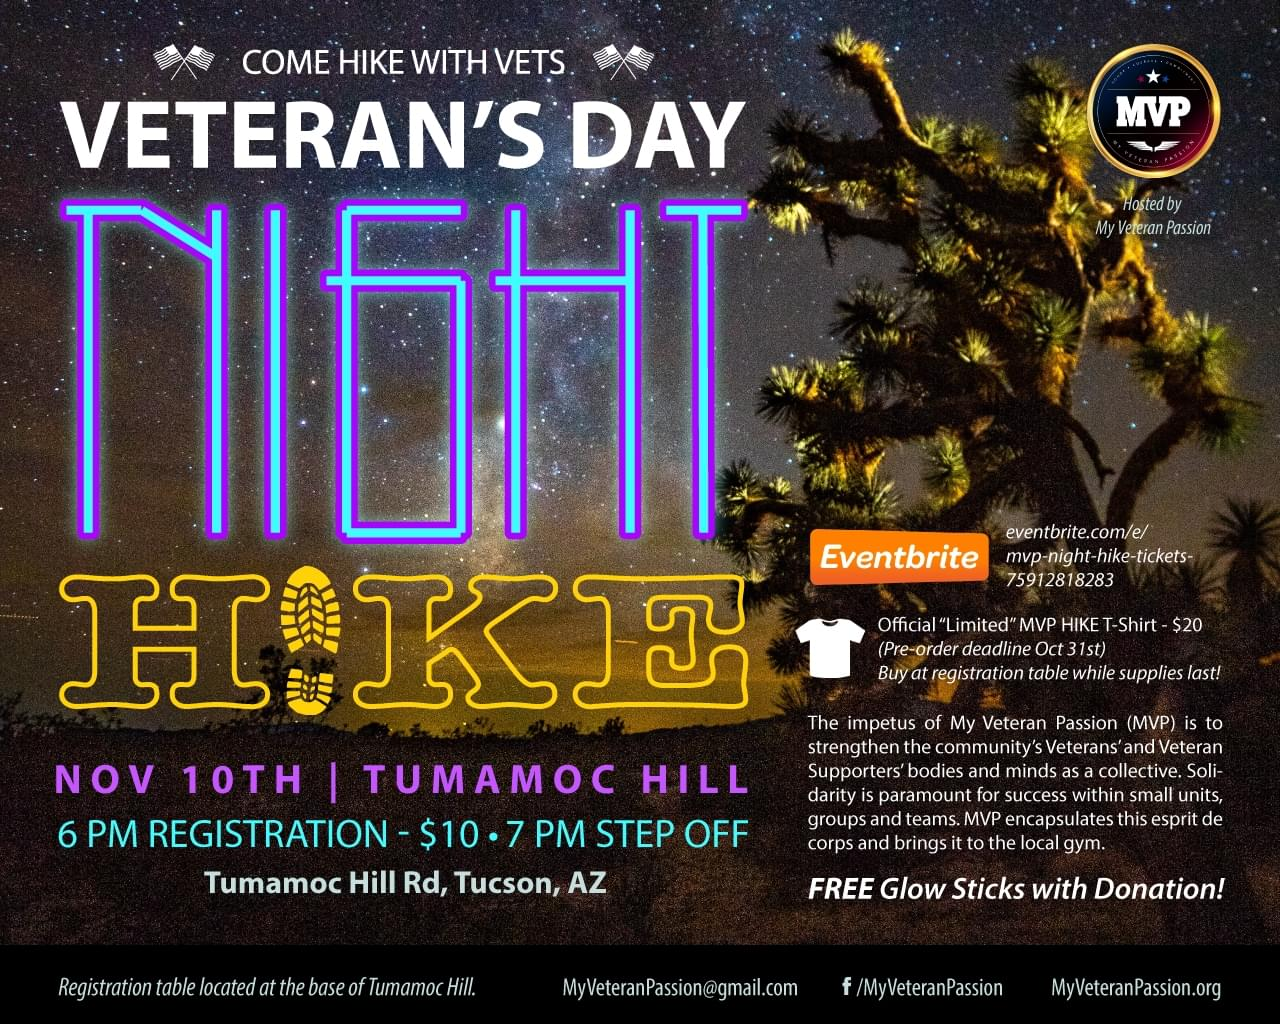 11/10: Veteran's Day Night Hike